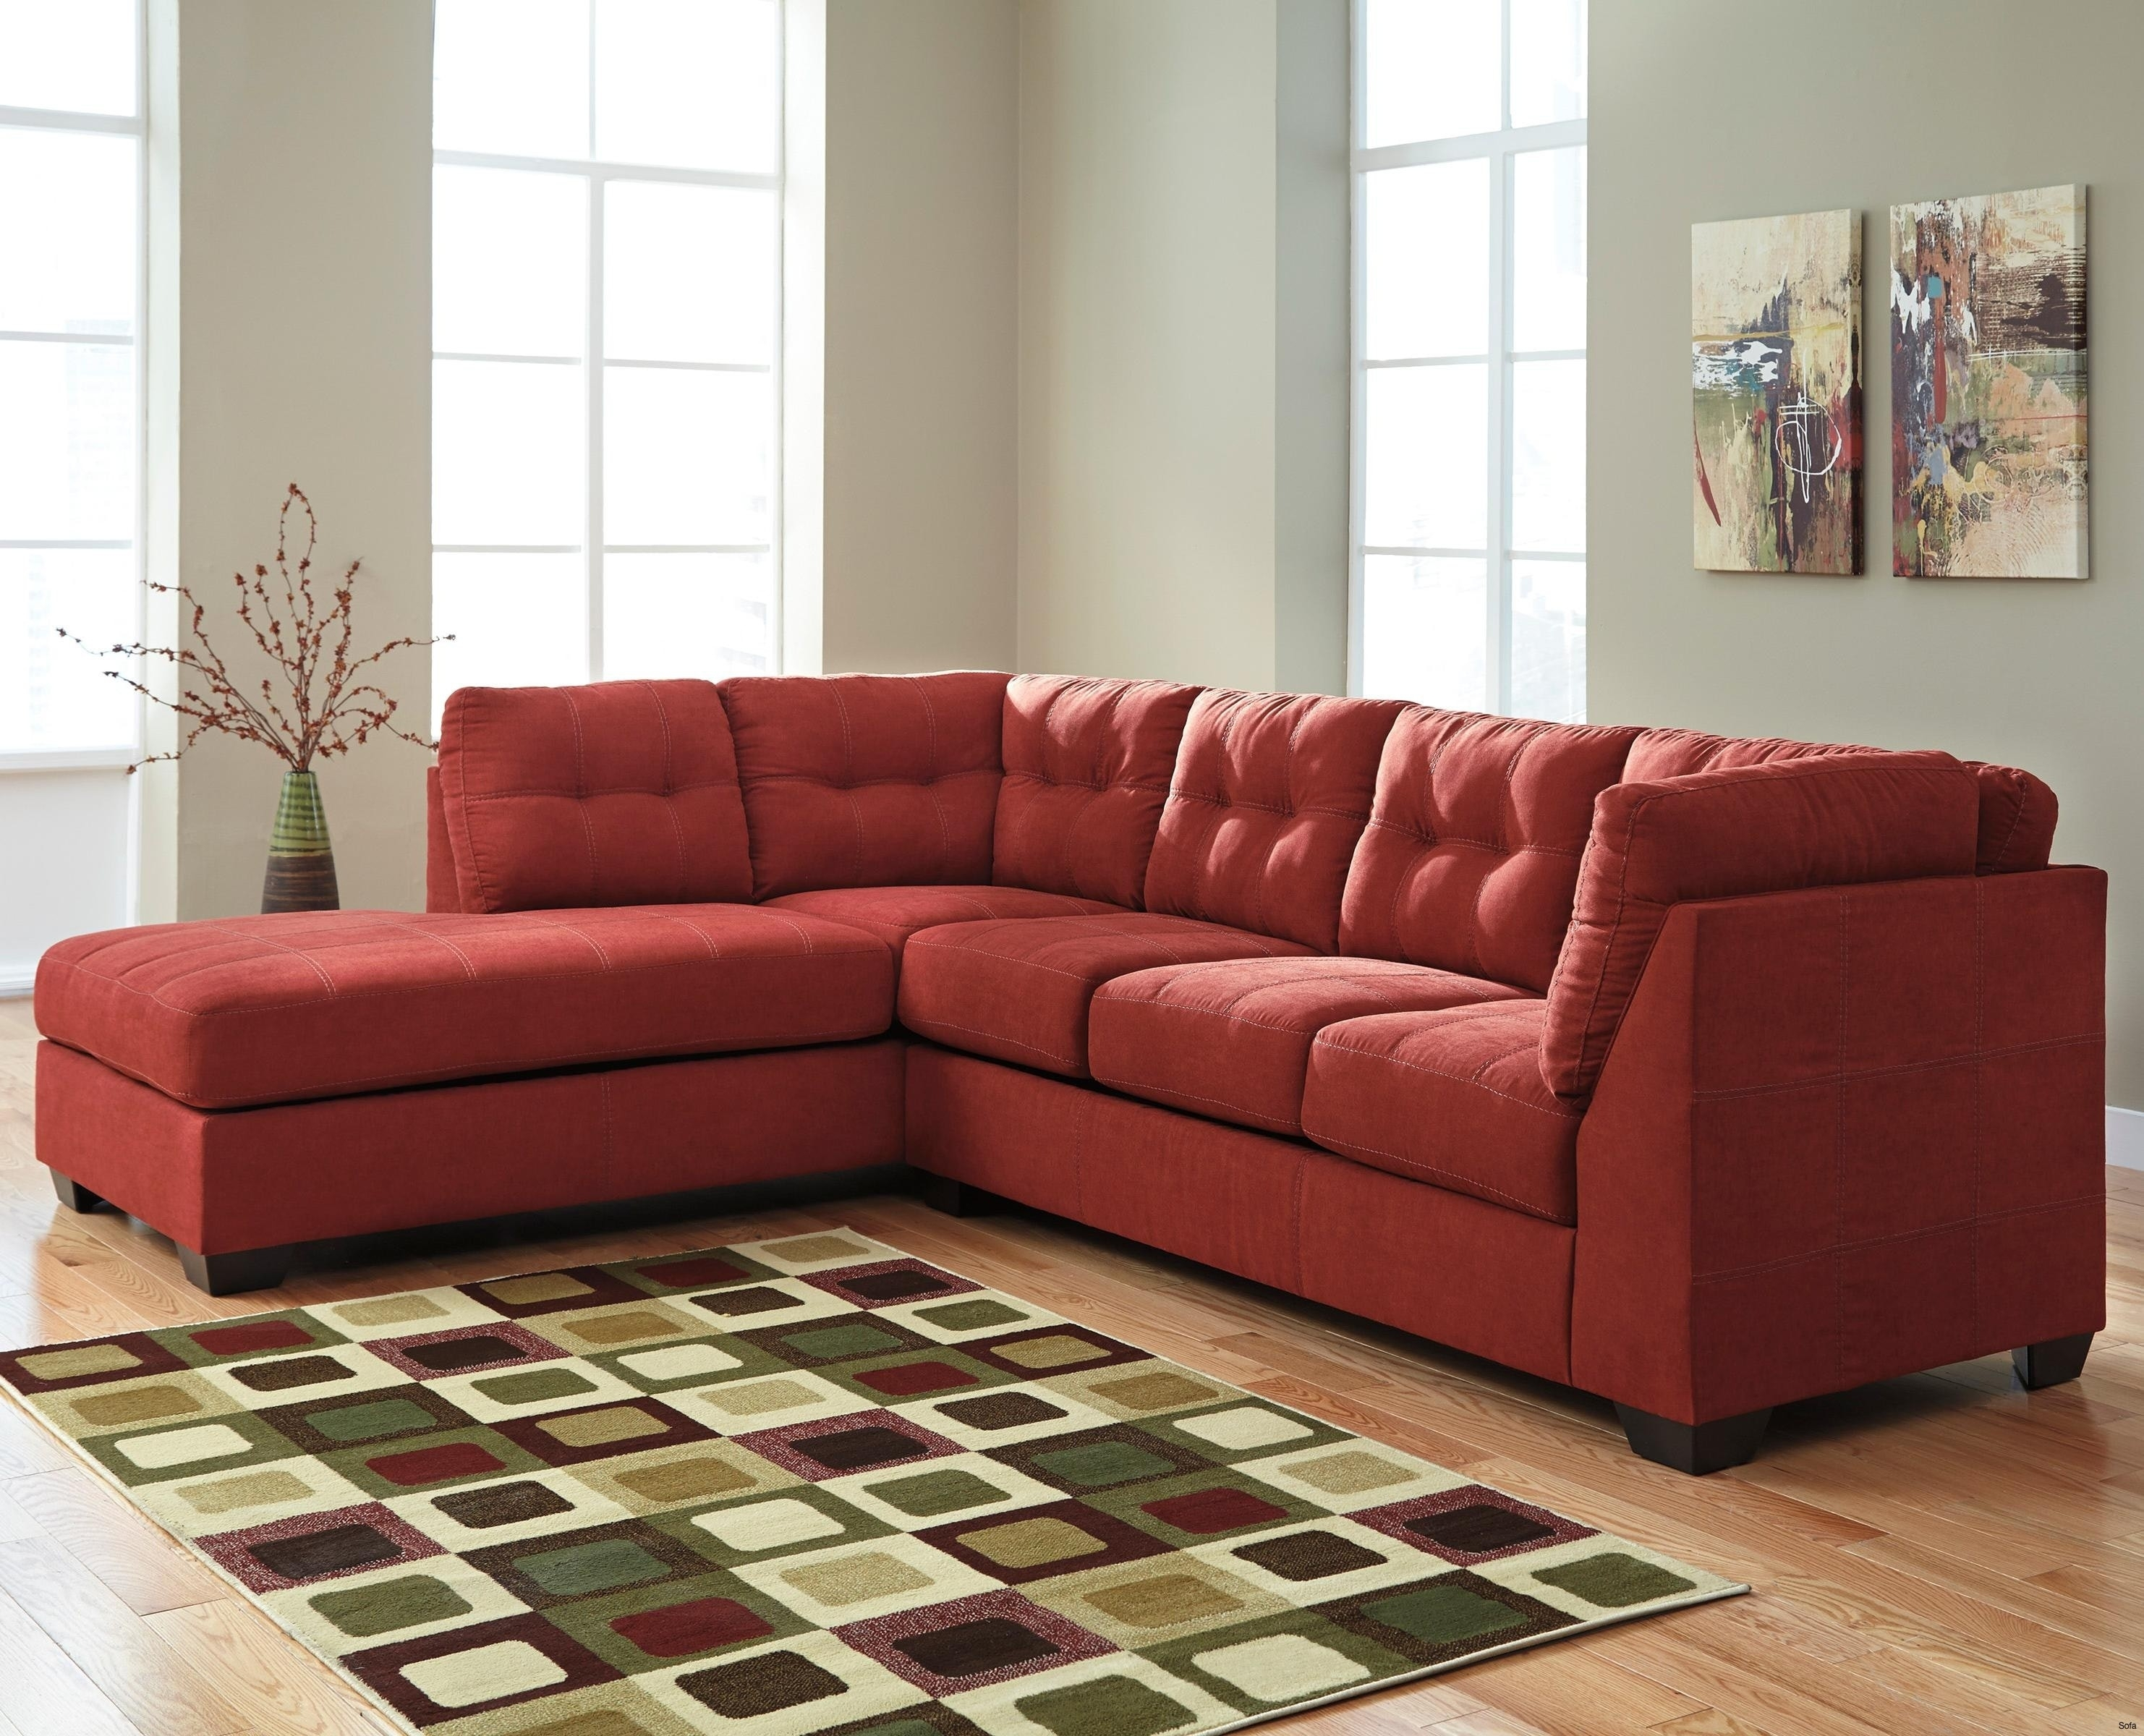 Fair Sofa With 2 Chaises For Your Sectional Sofa With 2 Chaises within Kerri 2 Piece Sectionals With Raf Chaise (Image 12 of 30)